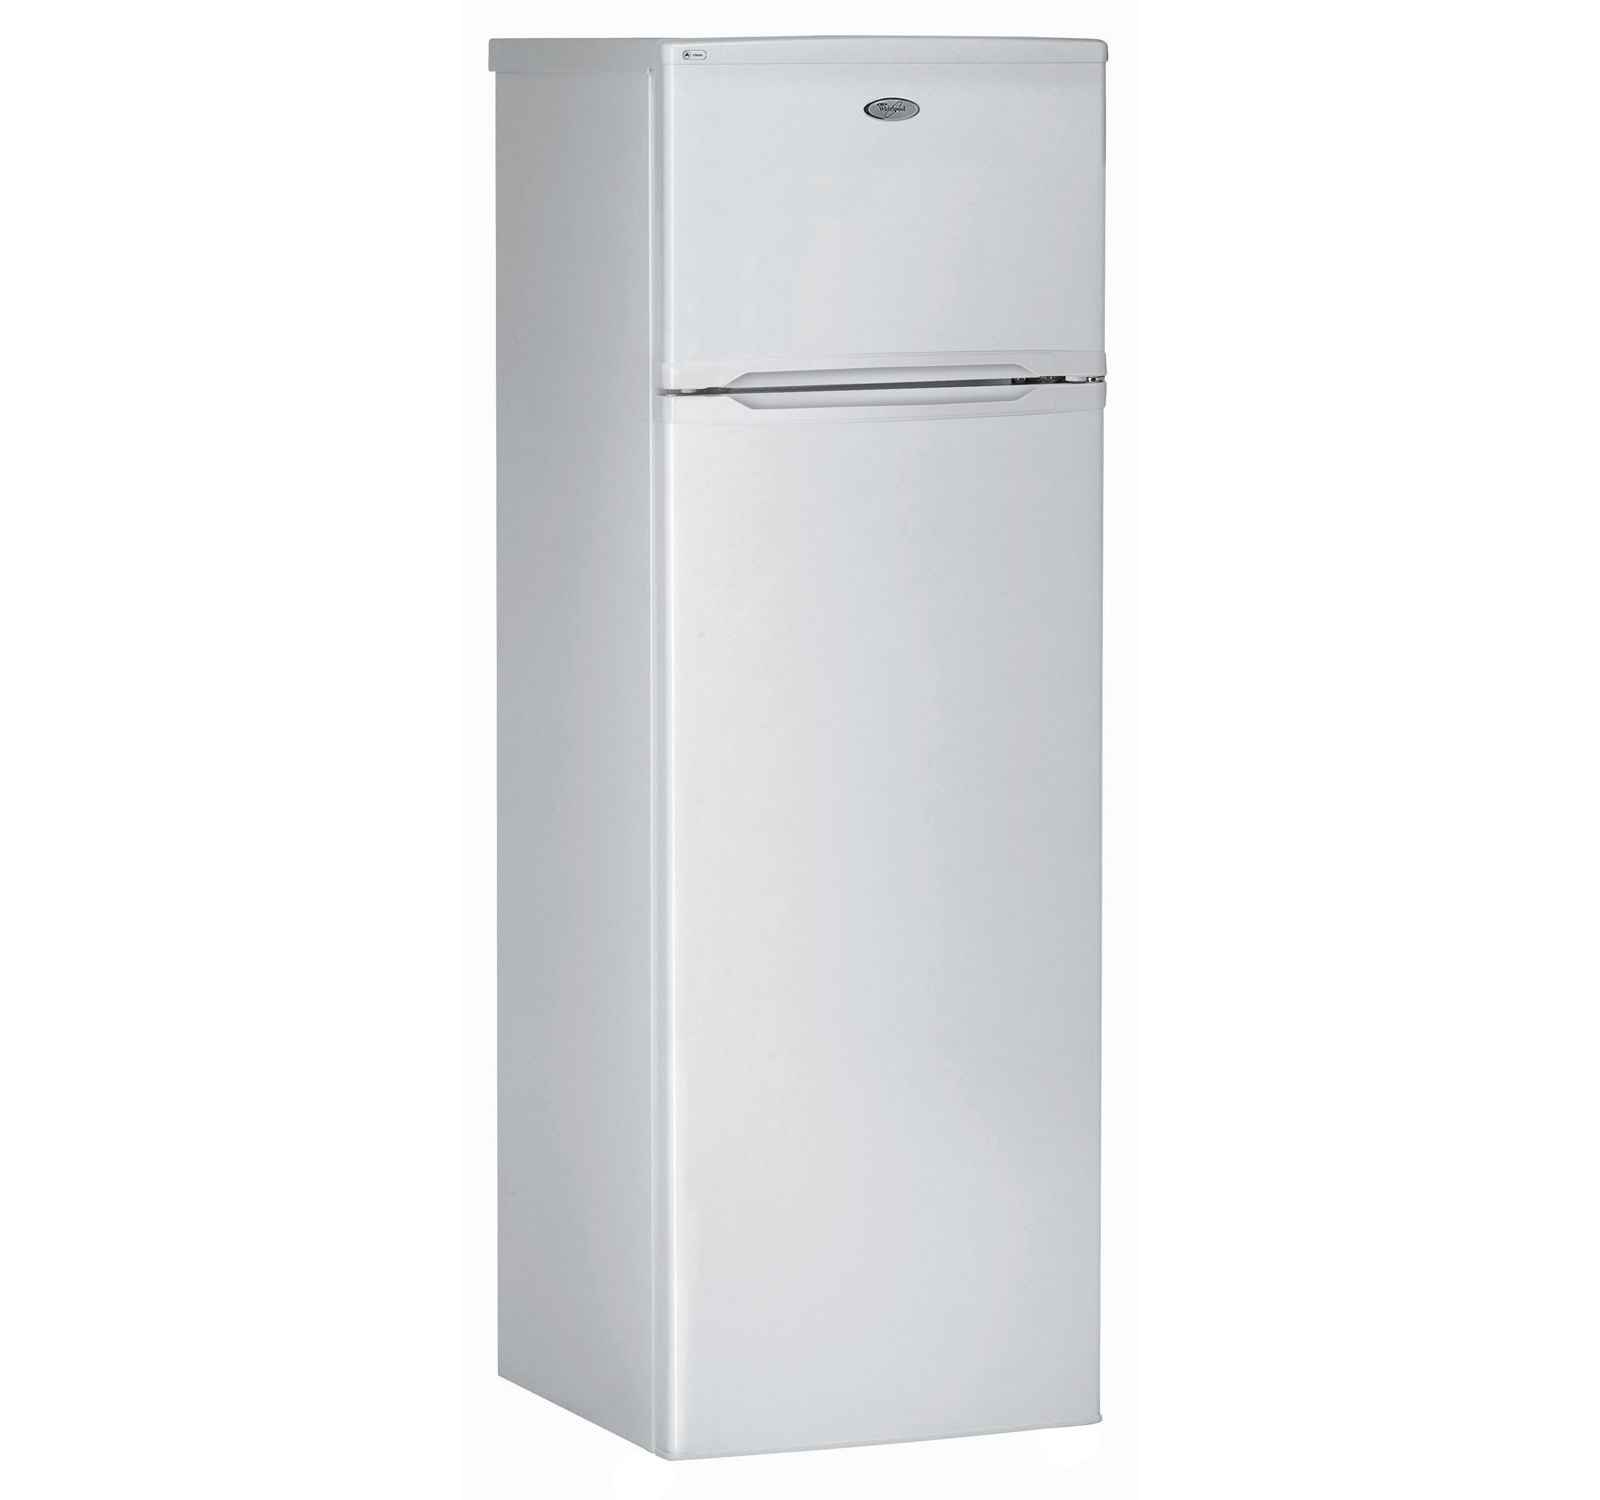 Whirlpool cheapest freezers in pearl white